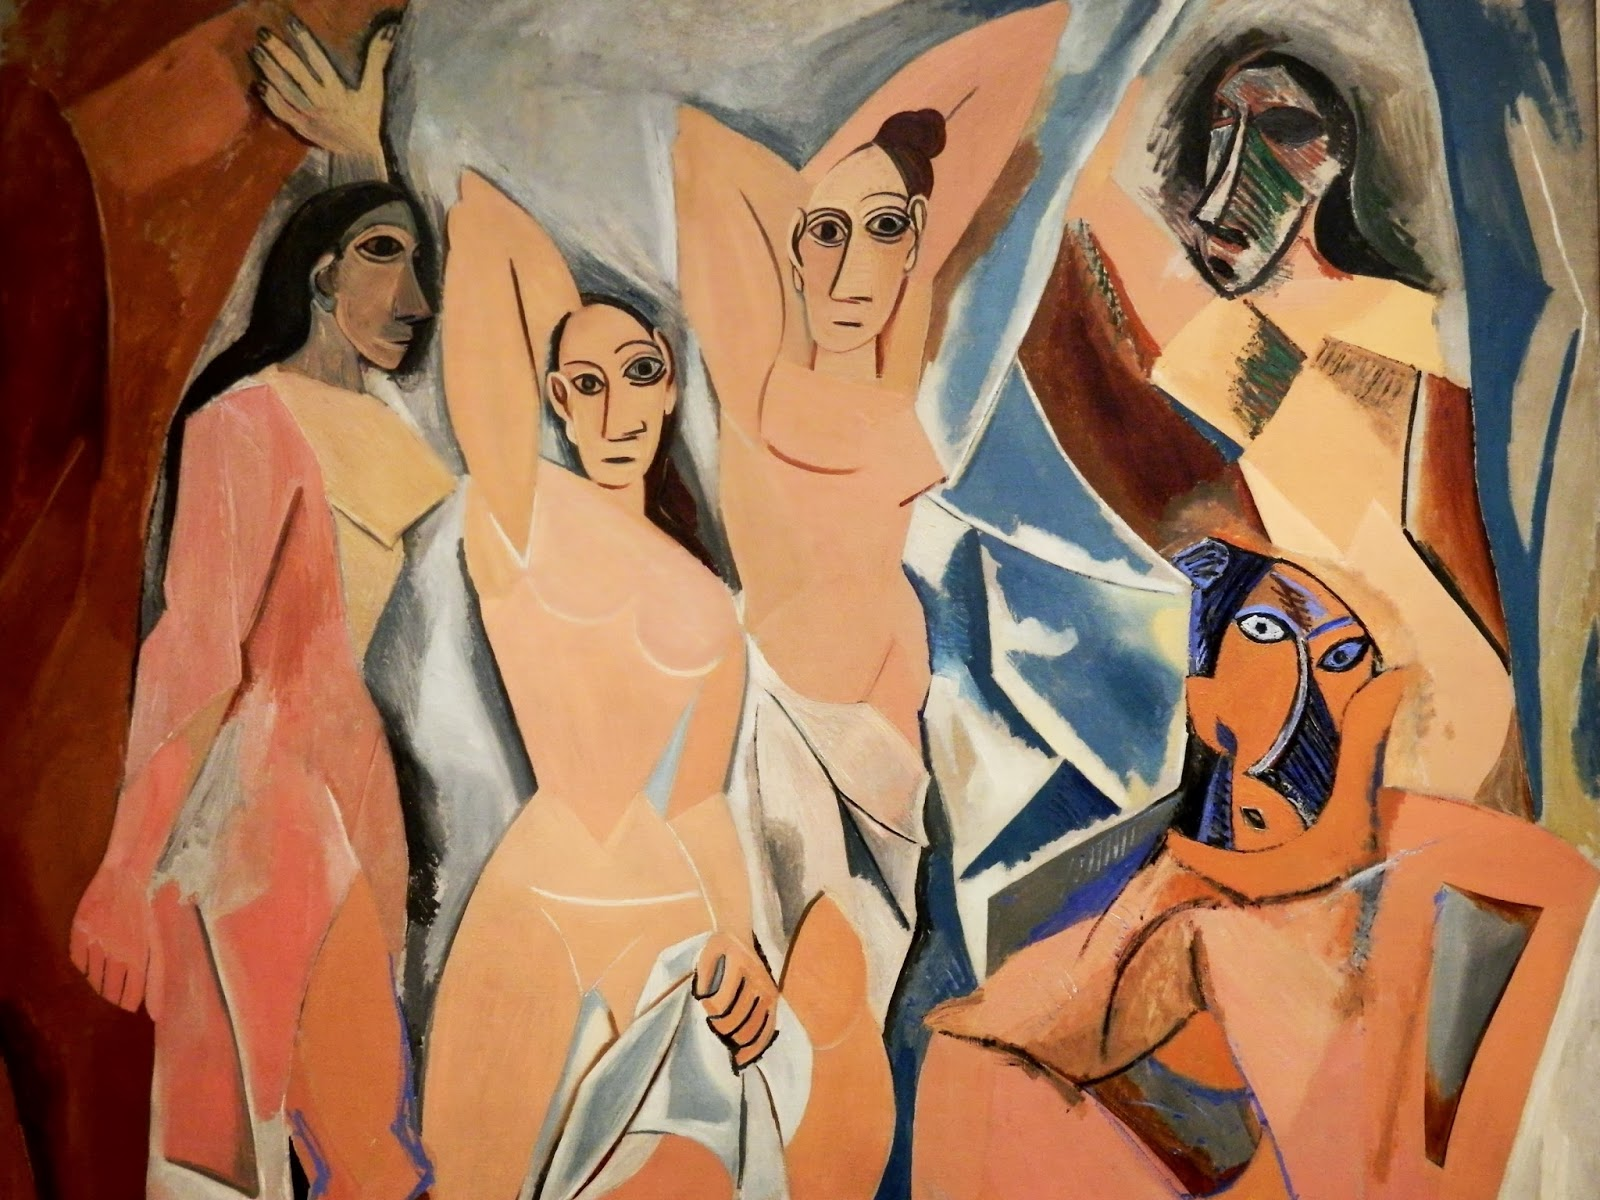 Les Demoiselles d'Avignon , Picasso, 1907,(Image courtesy of  MOMA, NYC)